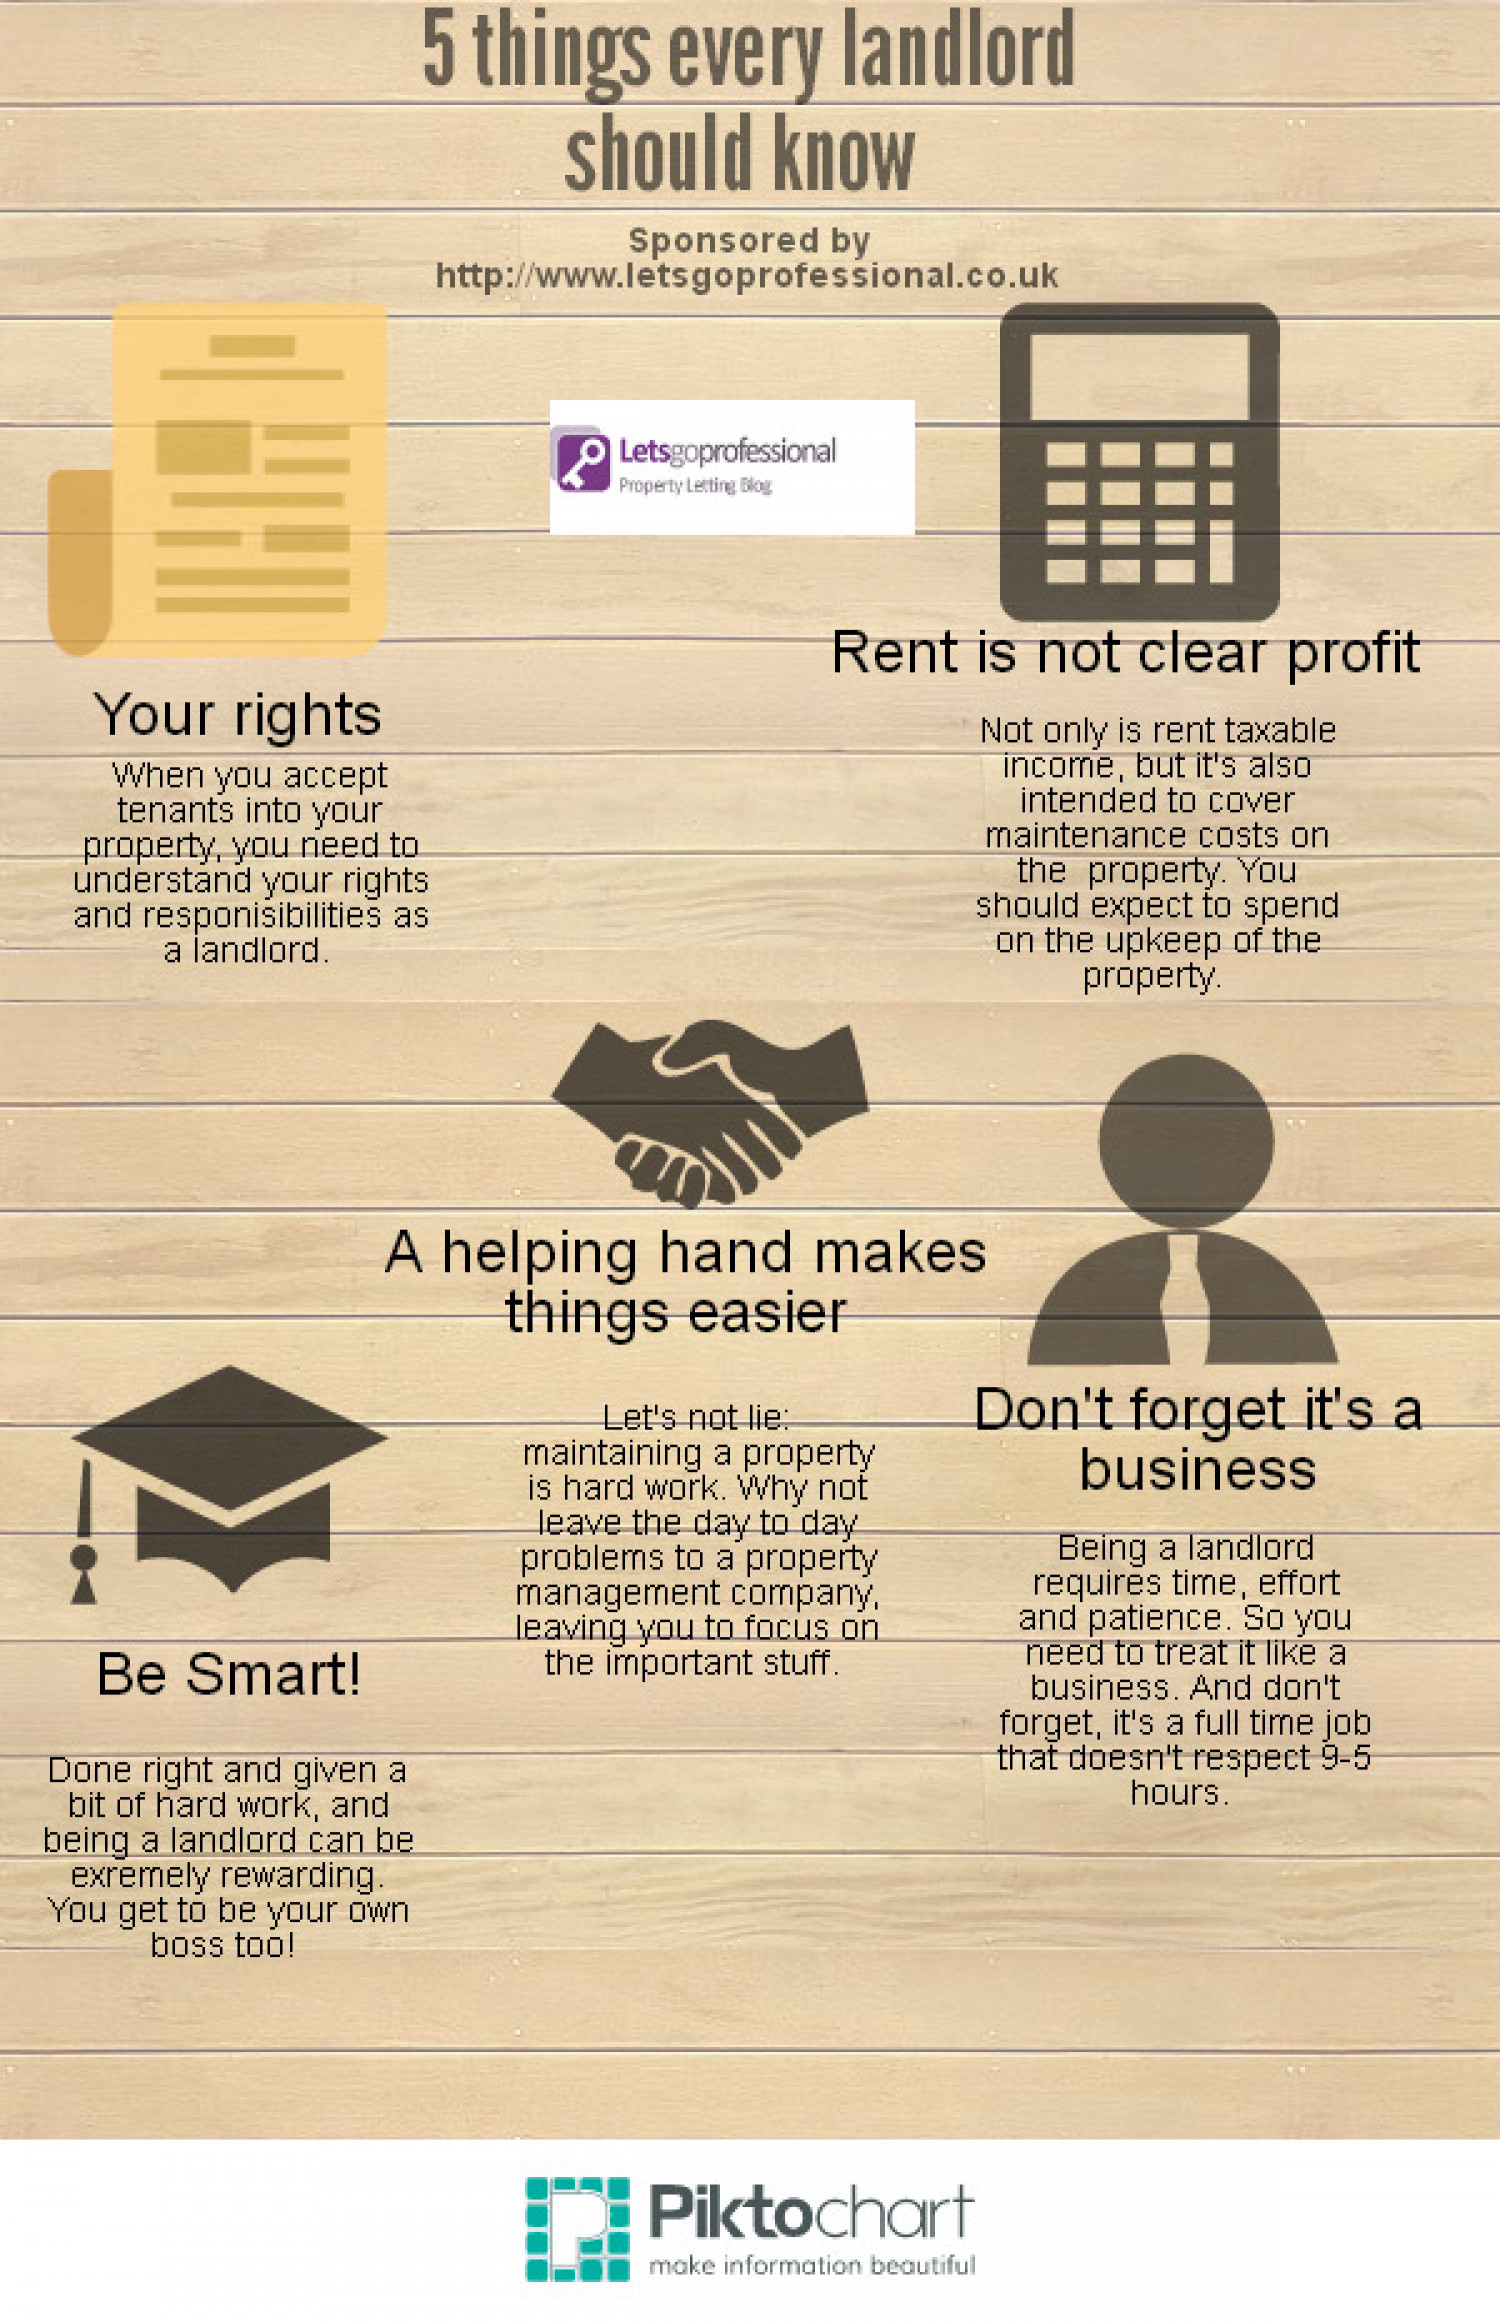 5 Things Every Landlord Should Know Infographic